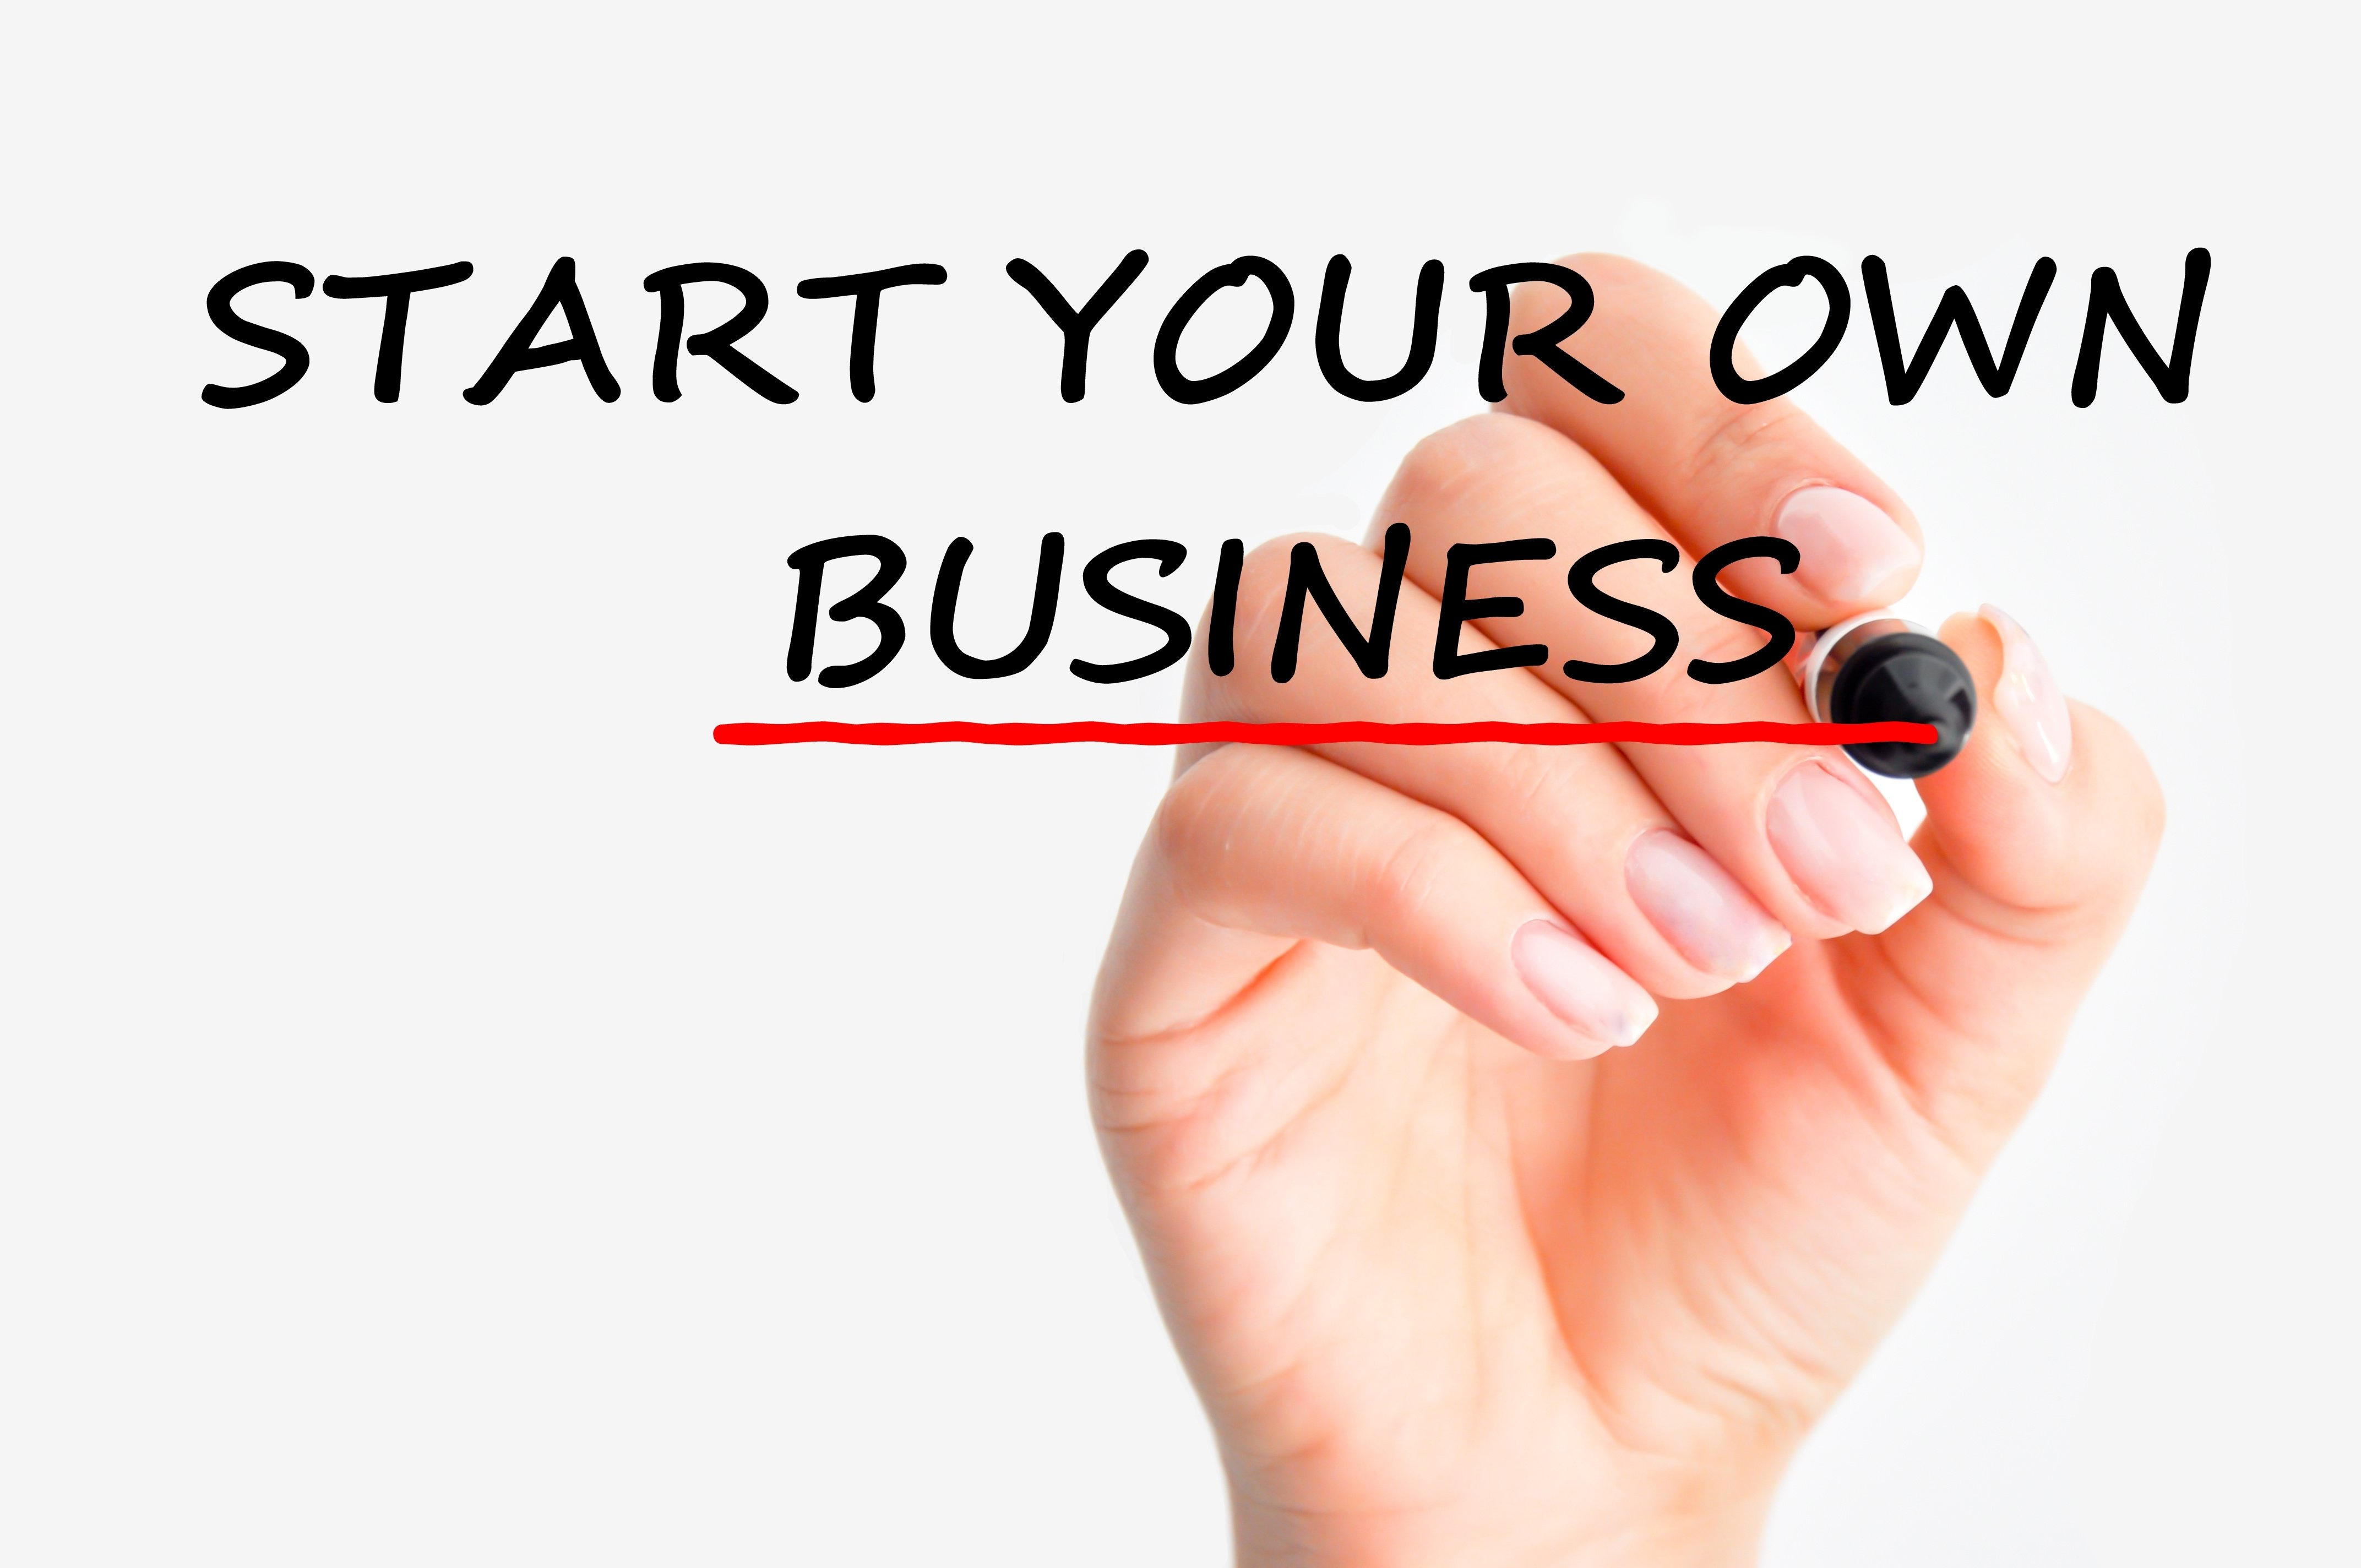 10 Best Good Ideas To Start A Business 10 low cost ideas to start your own business start your business 9 2020